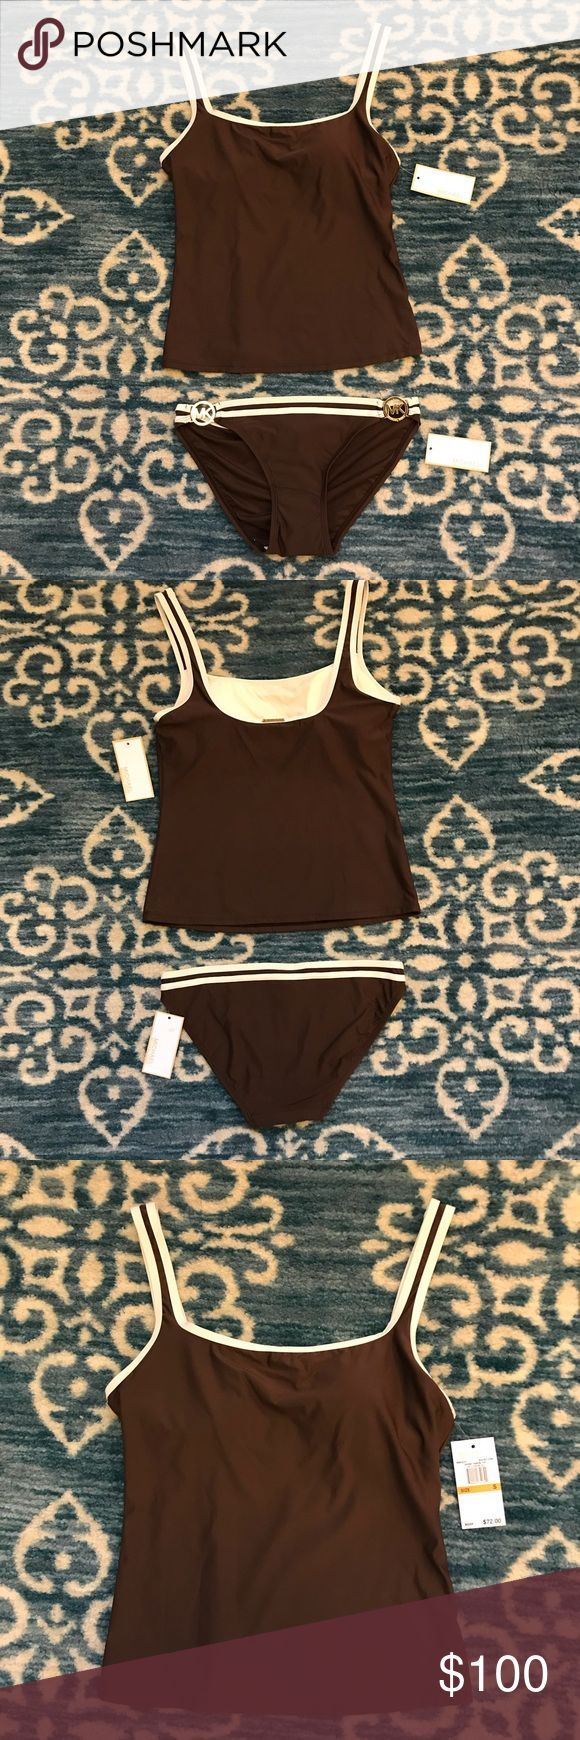 Micael Kors tankini size small top / XS bottom NWT Micael Kors tankini size small top / P (XS) bottom. Walnut brown with cream trimming and gold logo hardware. Top has removable padding. NWT - separately top is $72 and bottom is $54. MICHAEL Michael Kors Swim